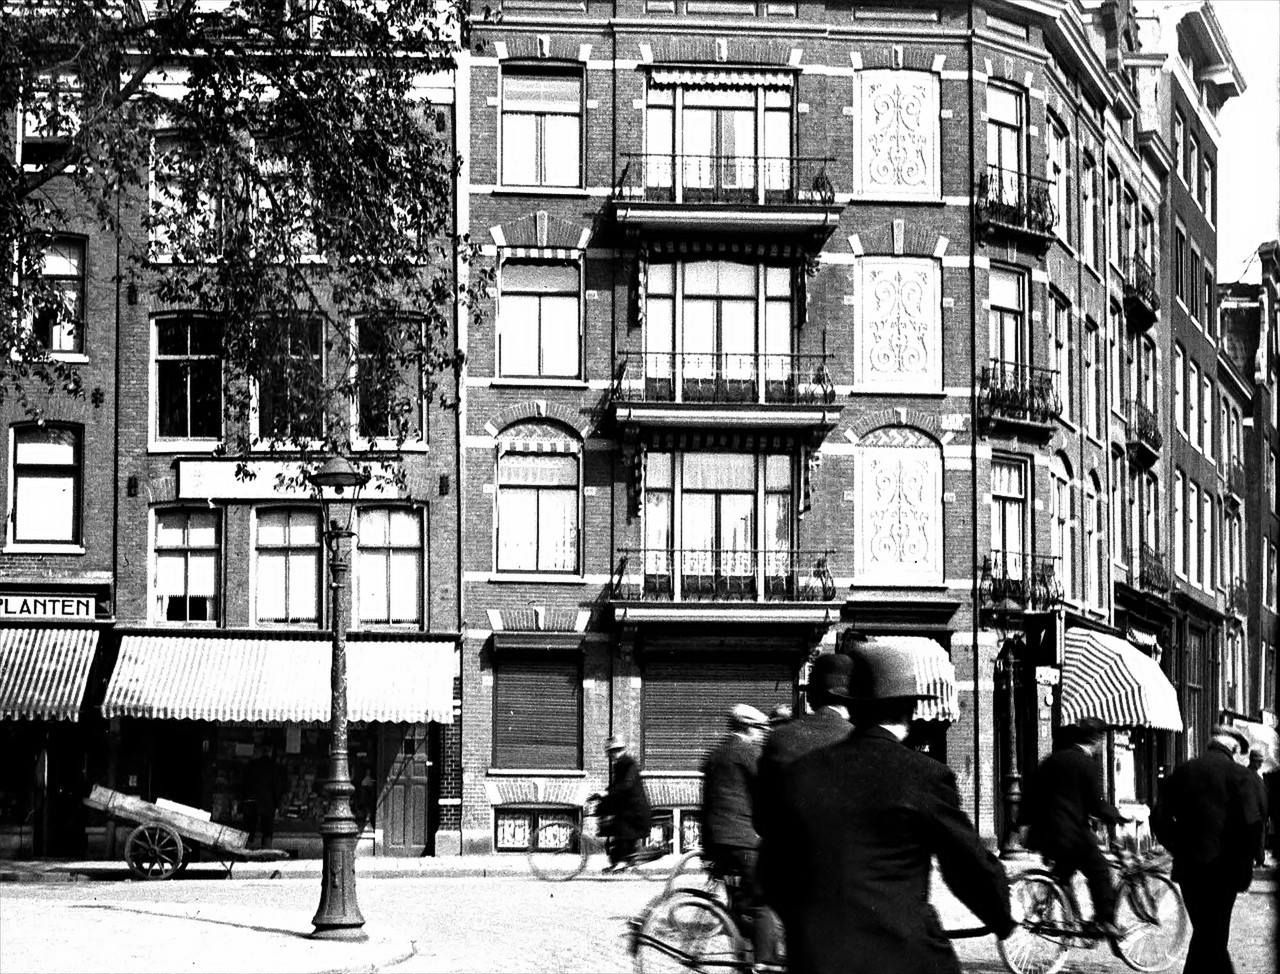 1930 A View Of The Corner Of Elandsgracht And Prinsengracht In